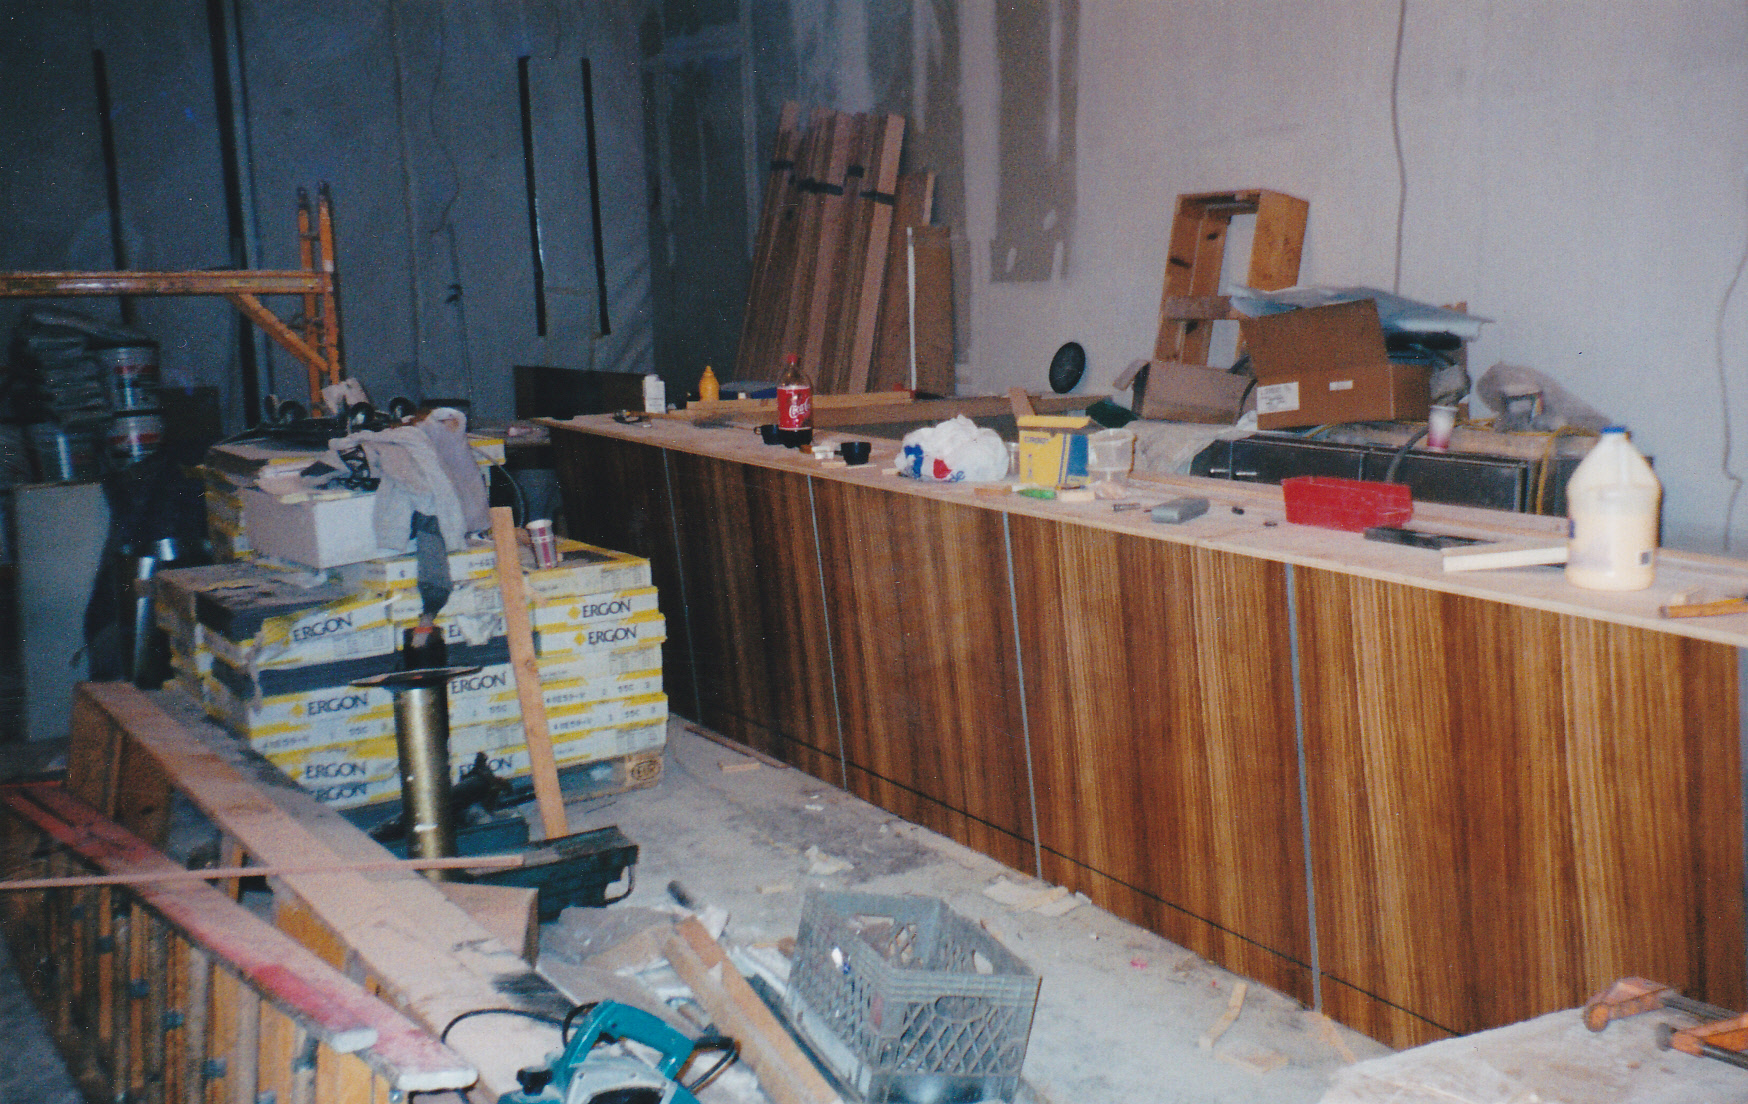 Zebrawood Bar being installed